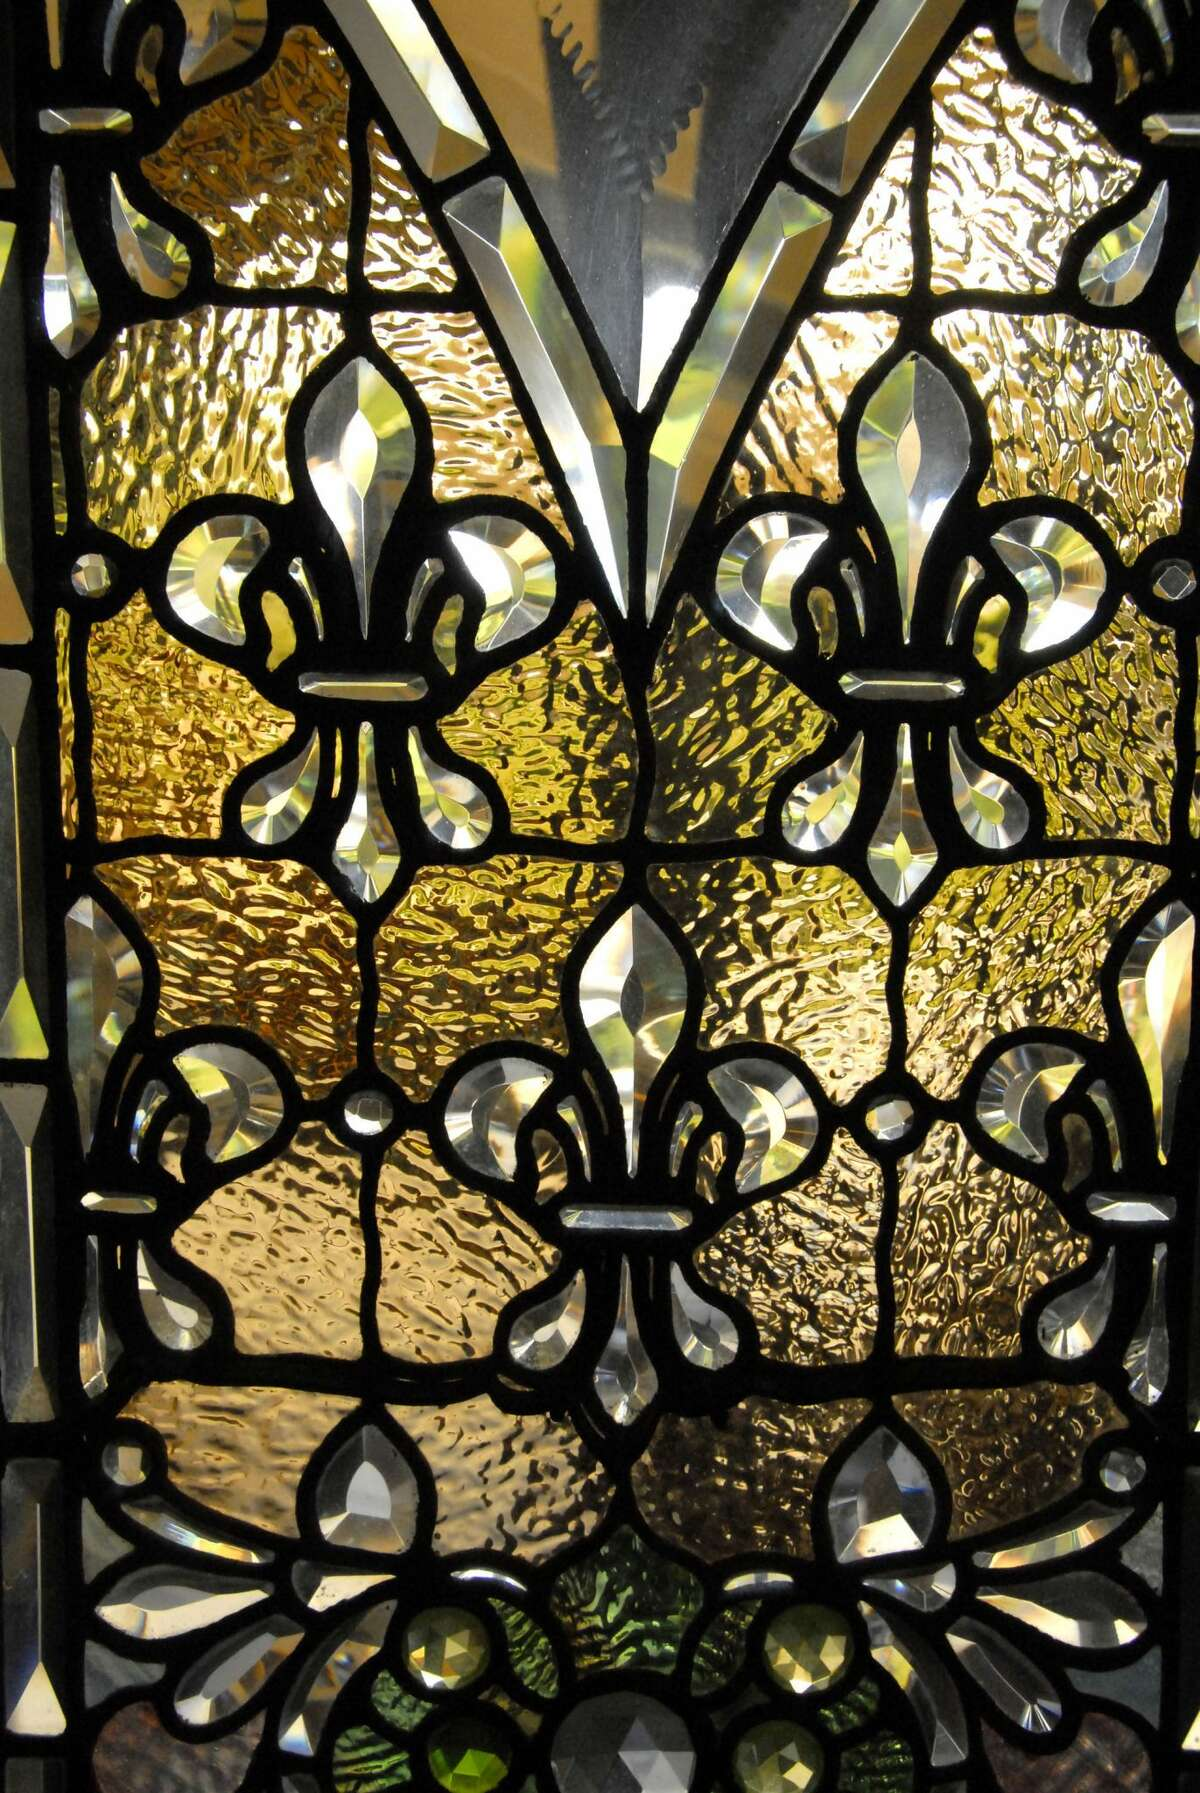 A stained glass piece at the Winchester Mystery House likely created by John Mallon's San Francisco studio.